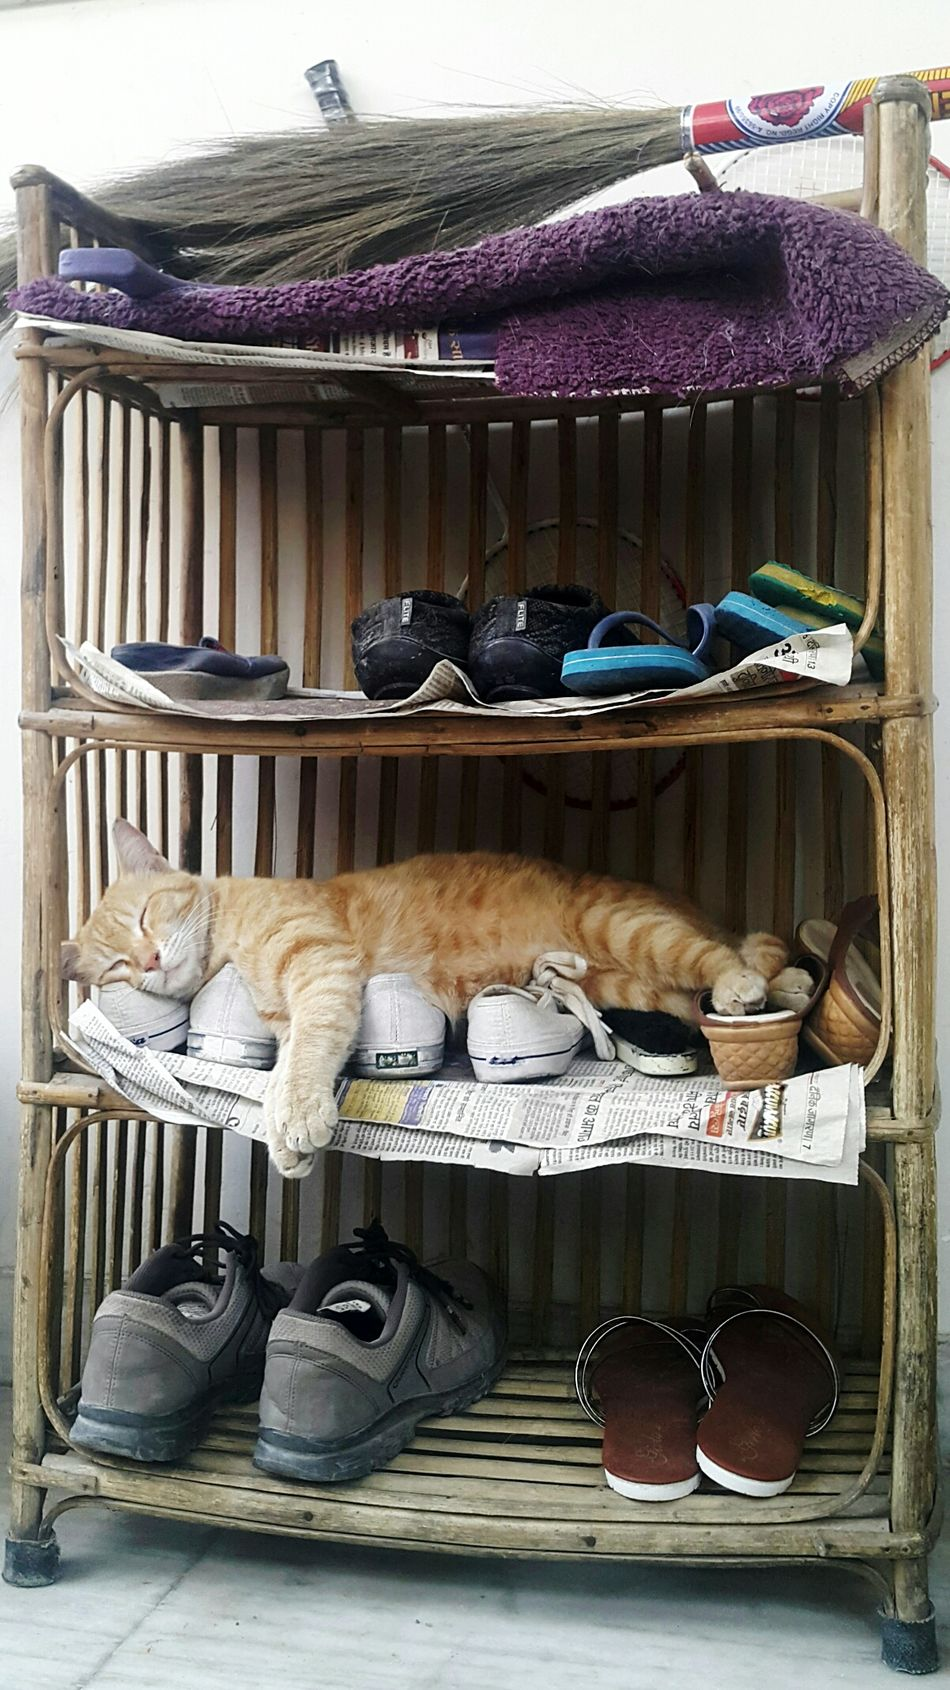 No People Shelf Sleeping Weekend Animal Themes Pets Shoe Shelf Hanging Around Relaxing Place Catlovers Relaxing Time Relaxing Moments Shoes Cats Sleeping Cat Relaxation Cats Of EyeEm Choice One Animal Business Finance And Industry Cat Lovers